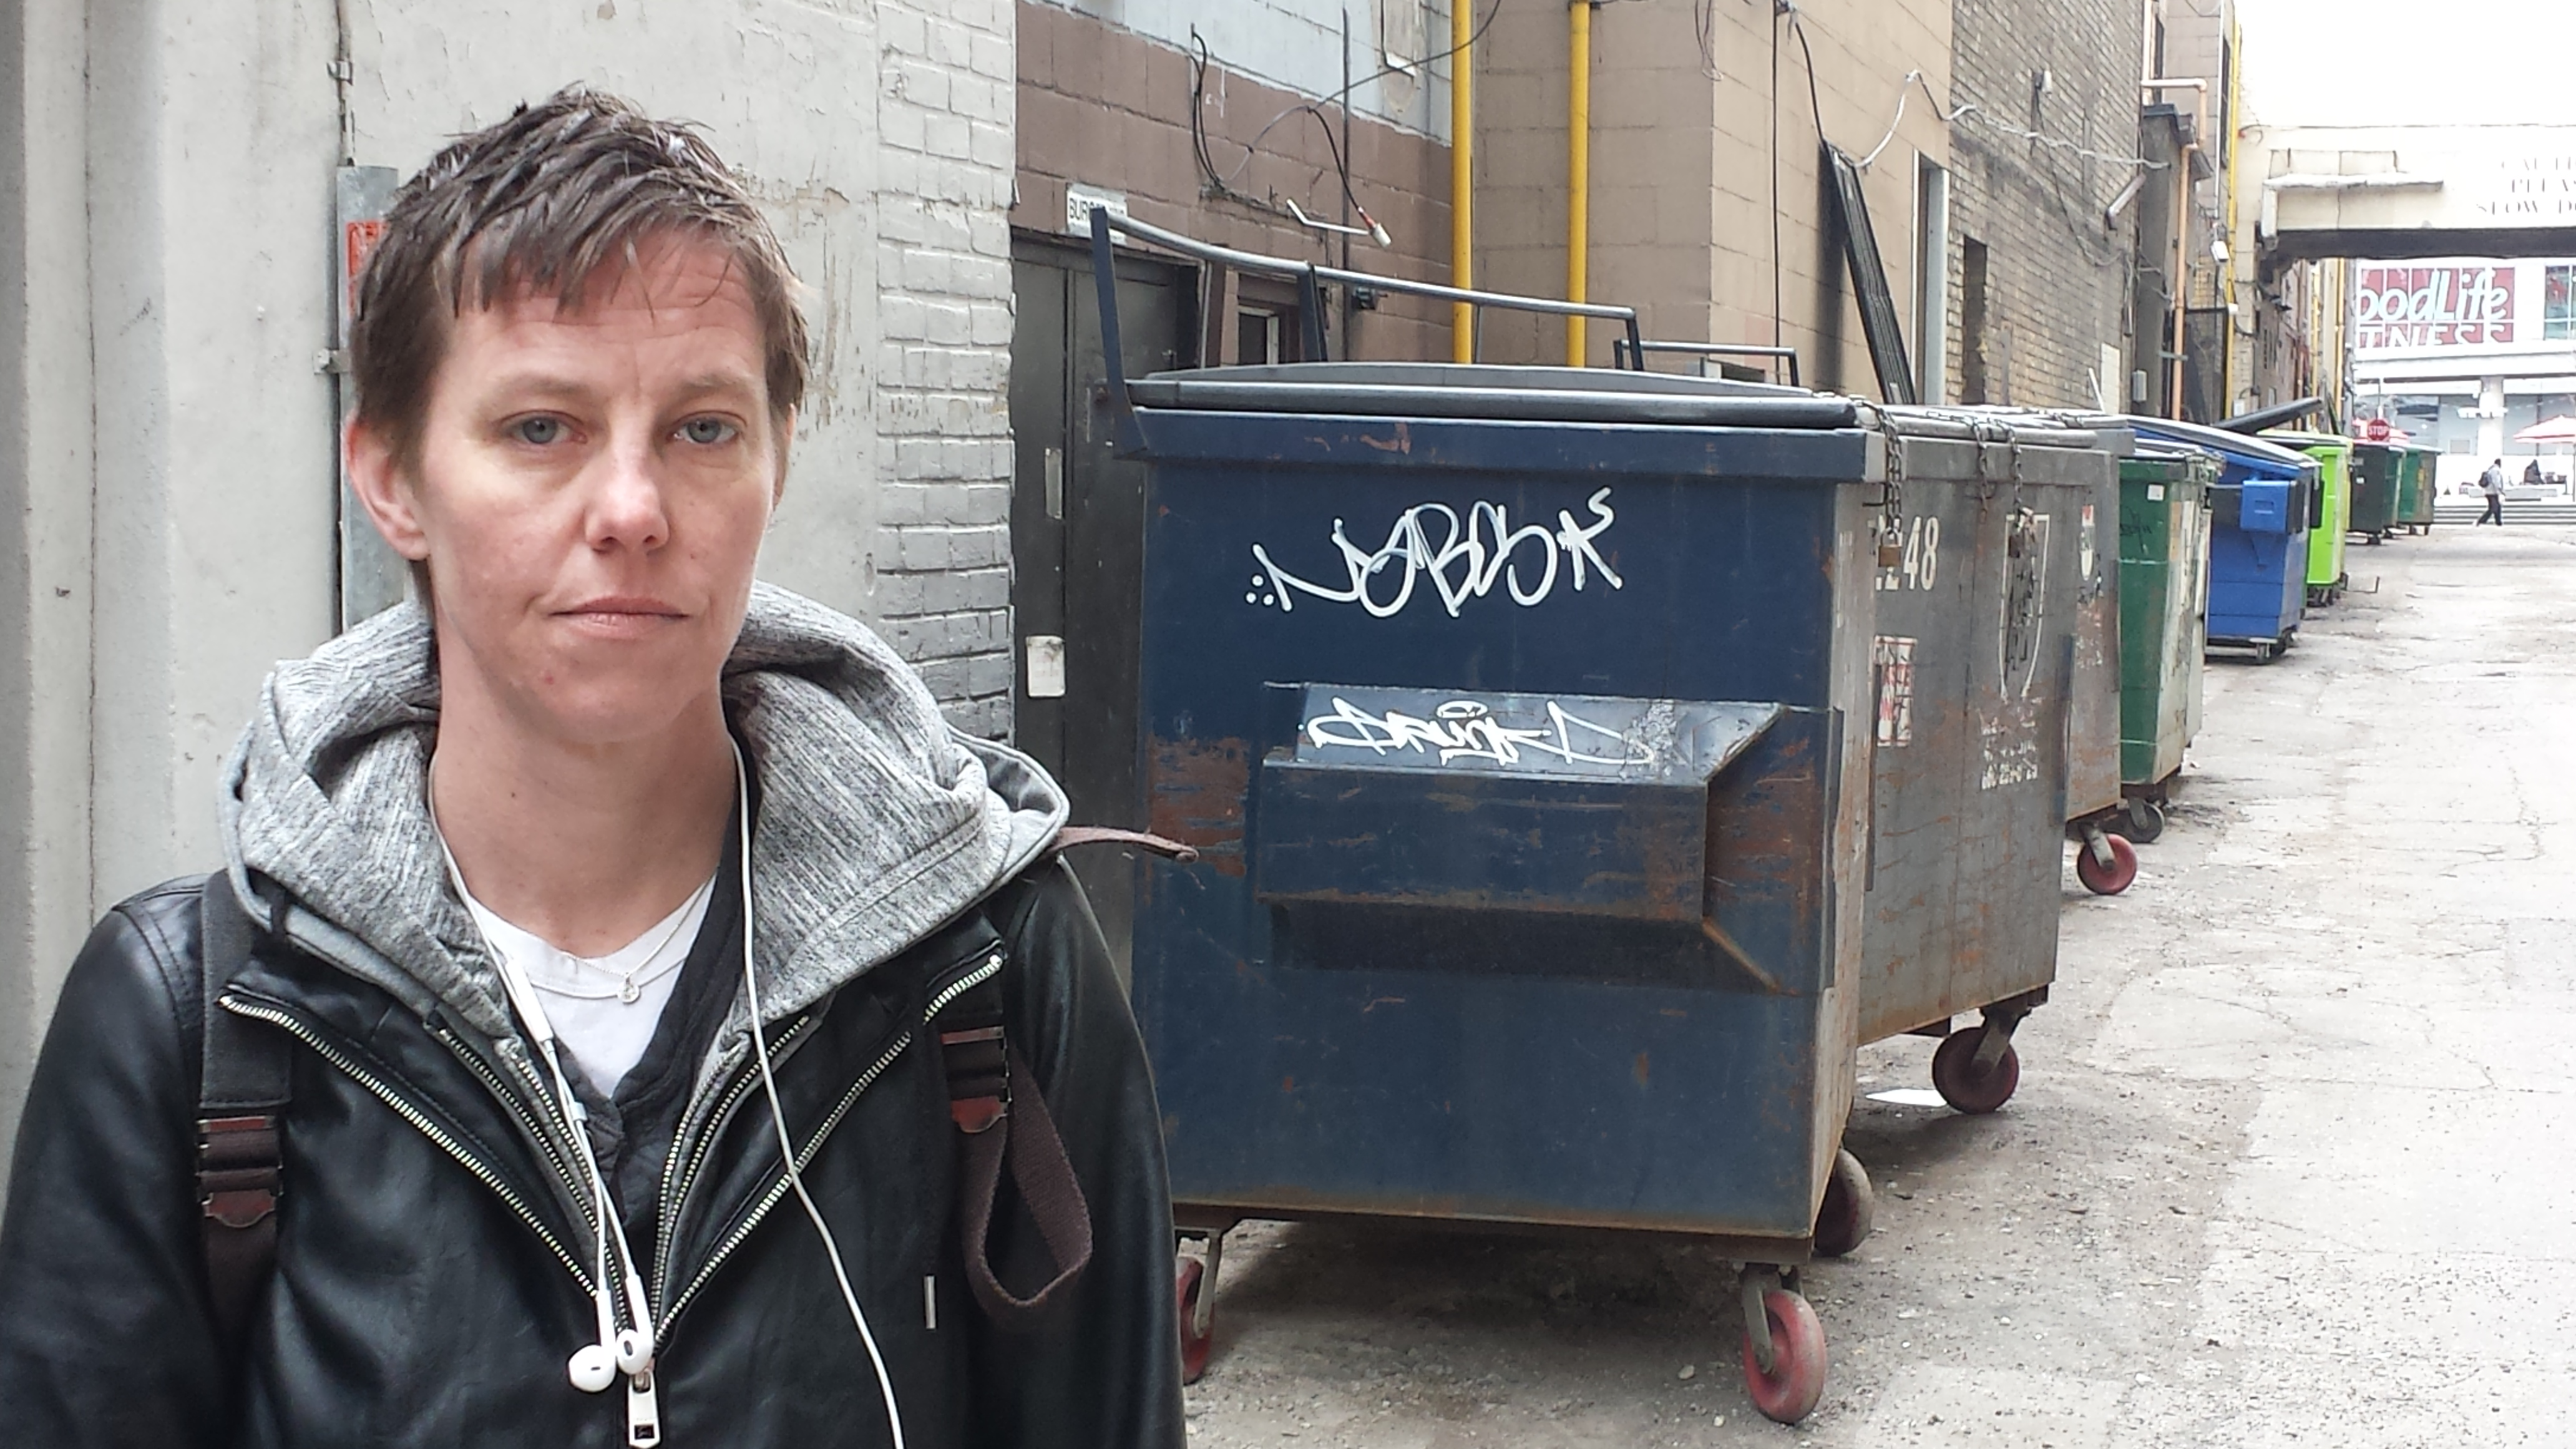 Amy Wright used to shoot up in alleys like this in downtown Toronto. Now she's helping the city design its safe injection sites.